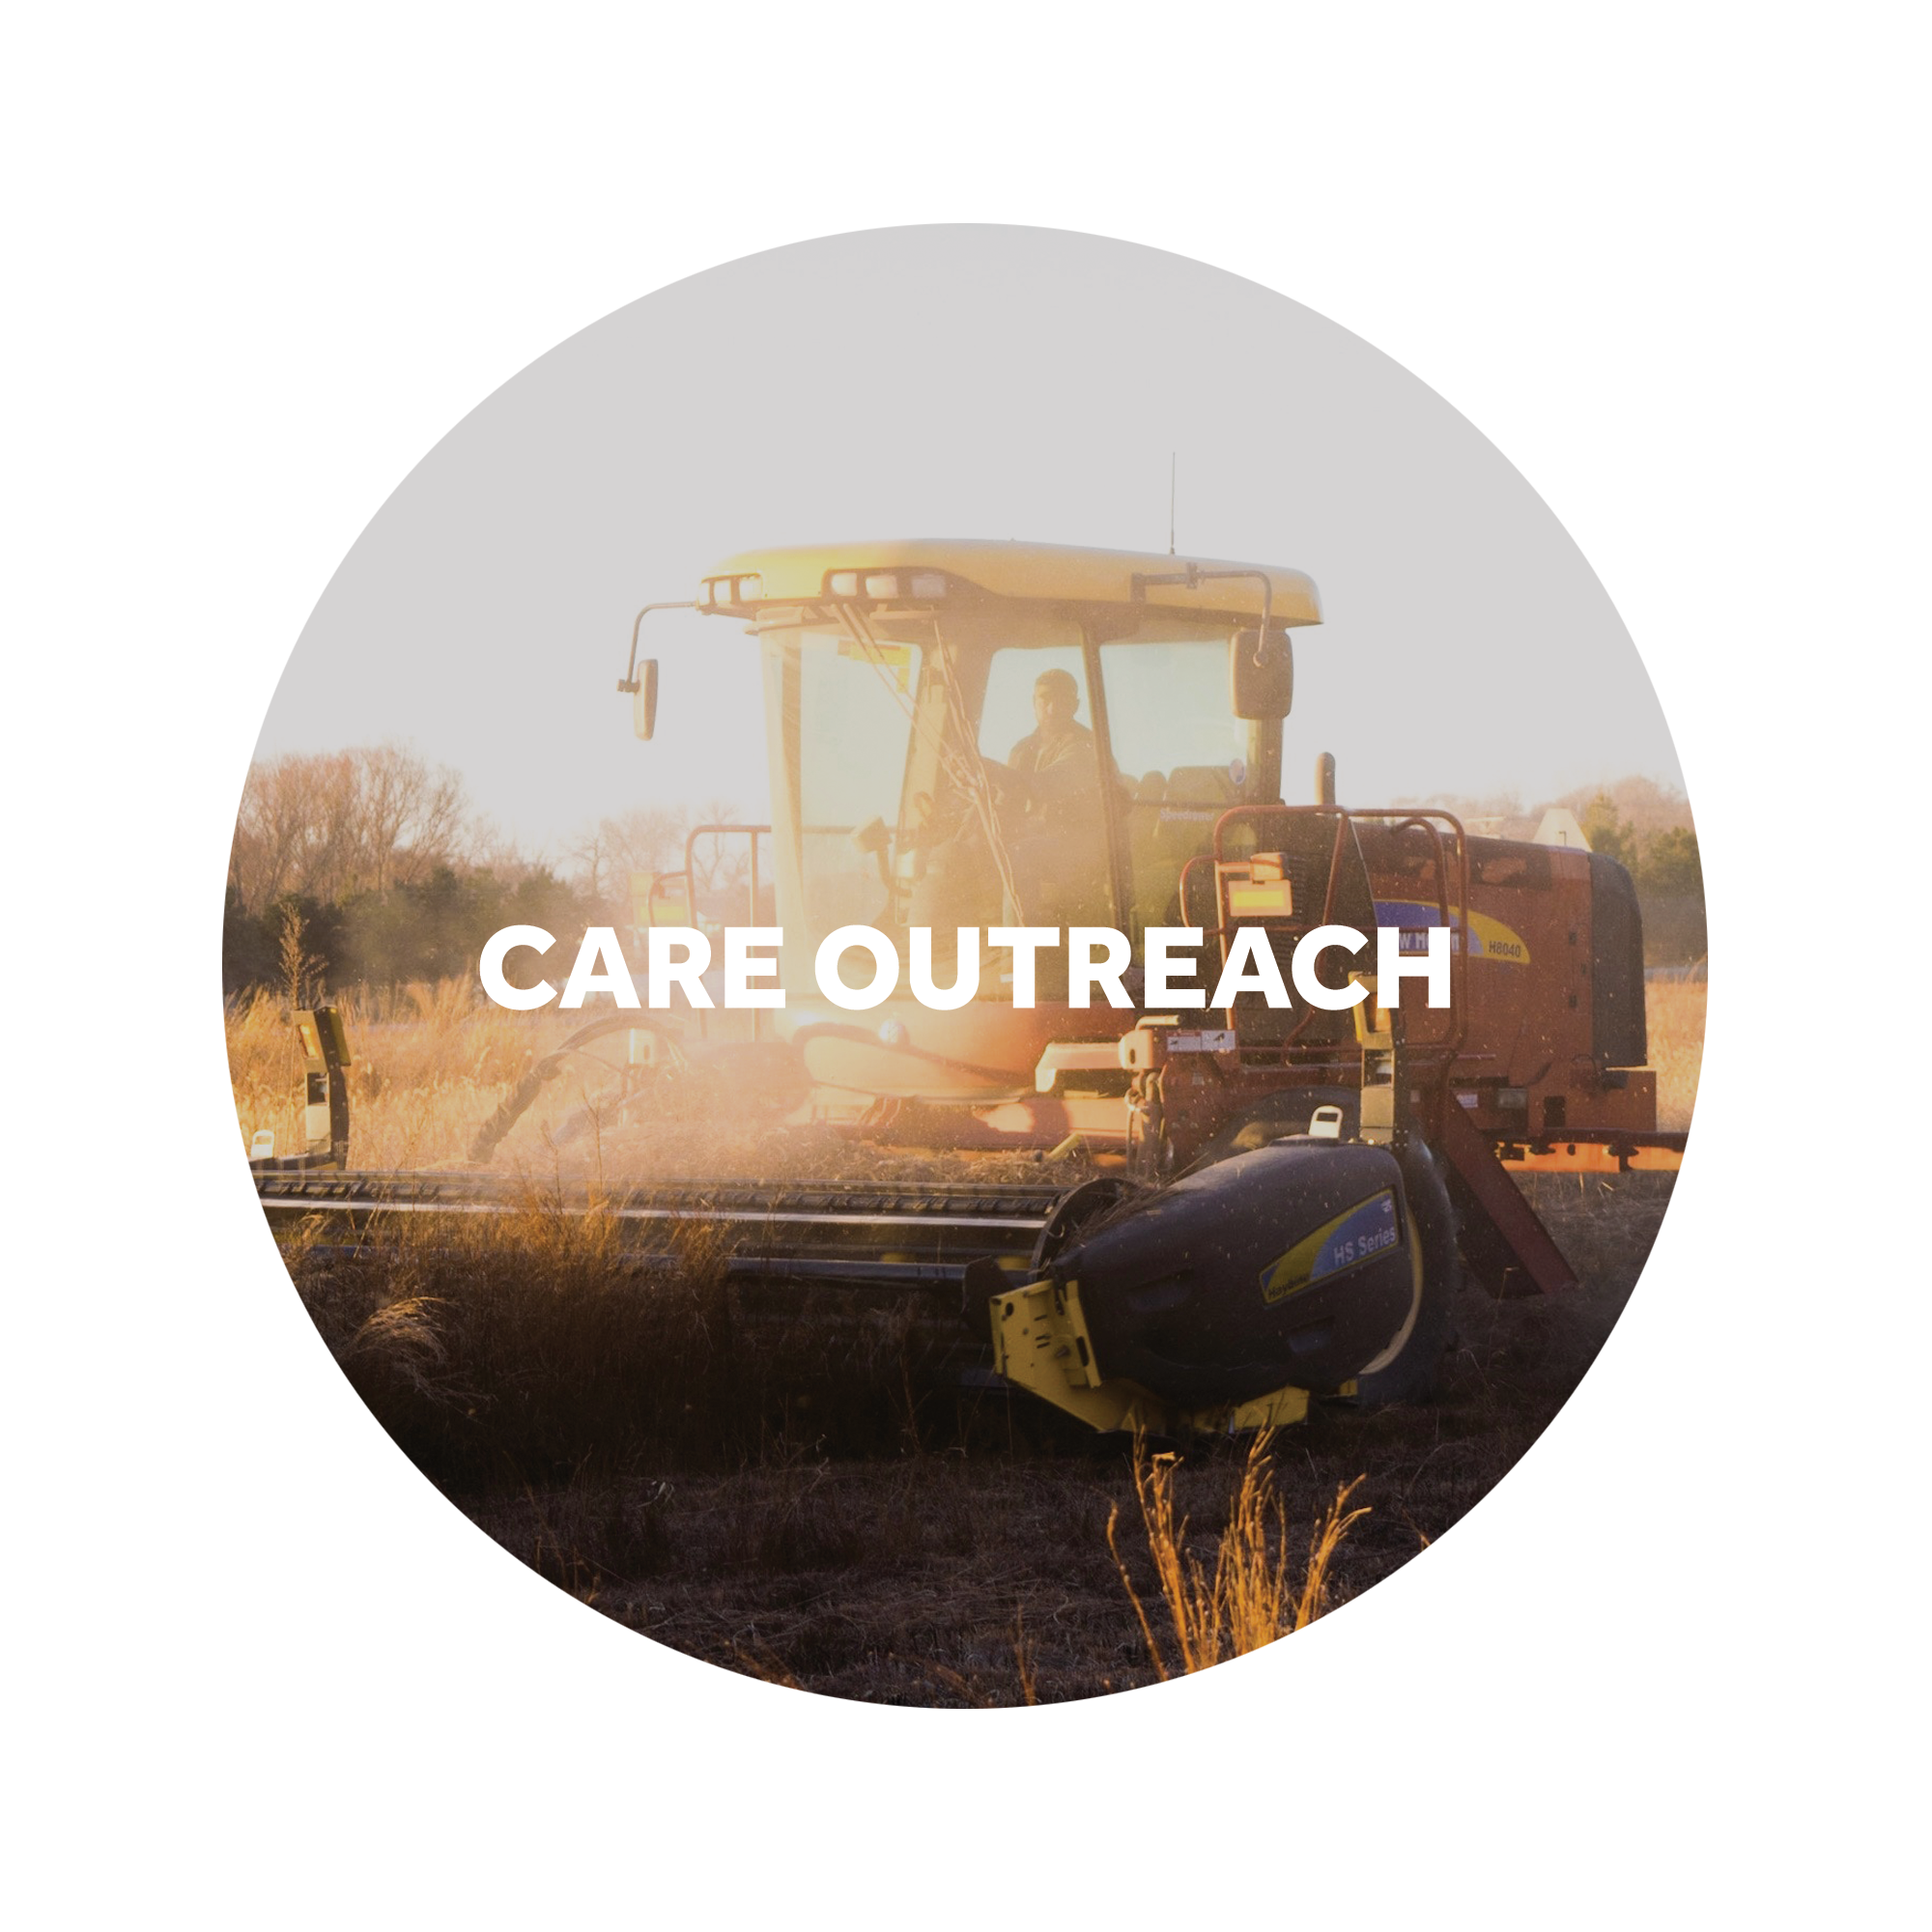 CareOutreach01.png